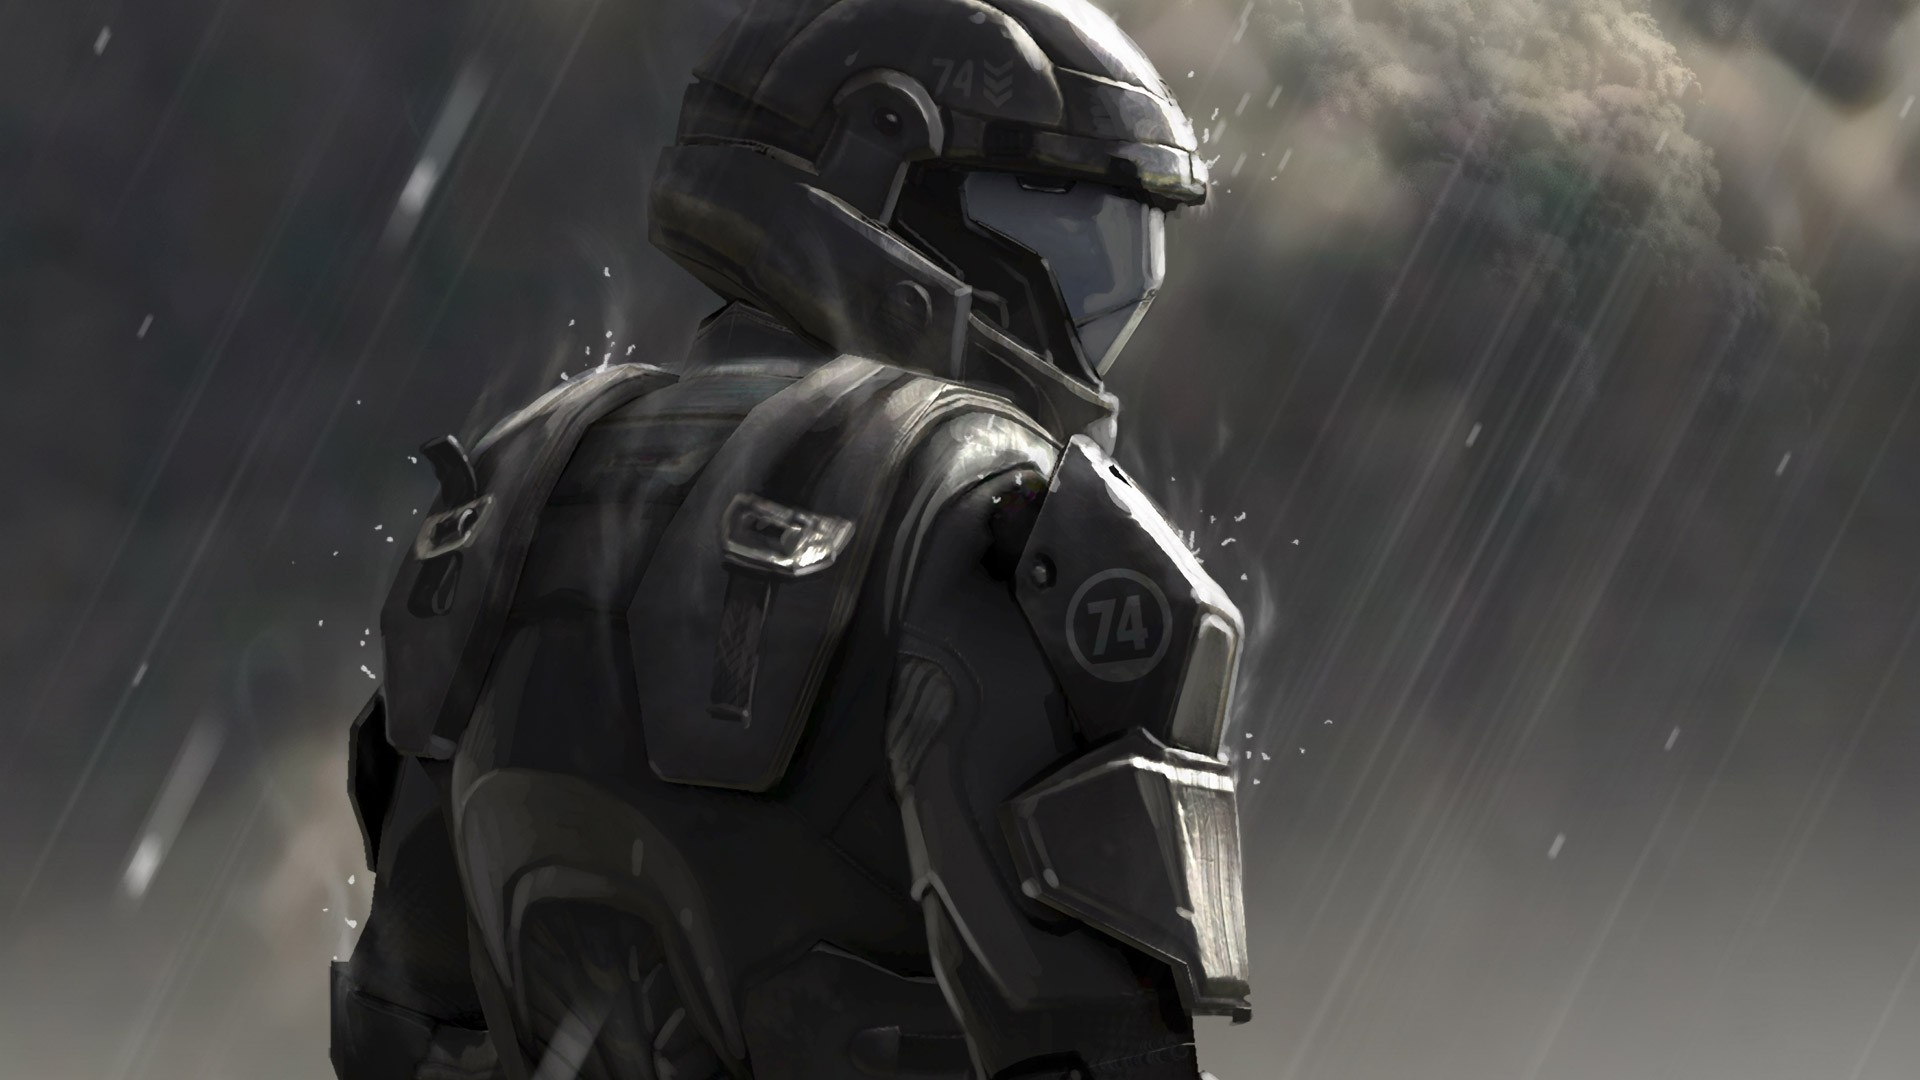 Halo Wallpaper Iphone 6 Hd